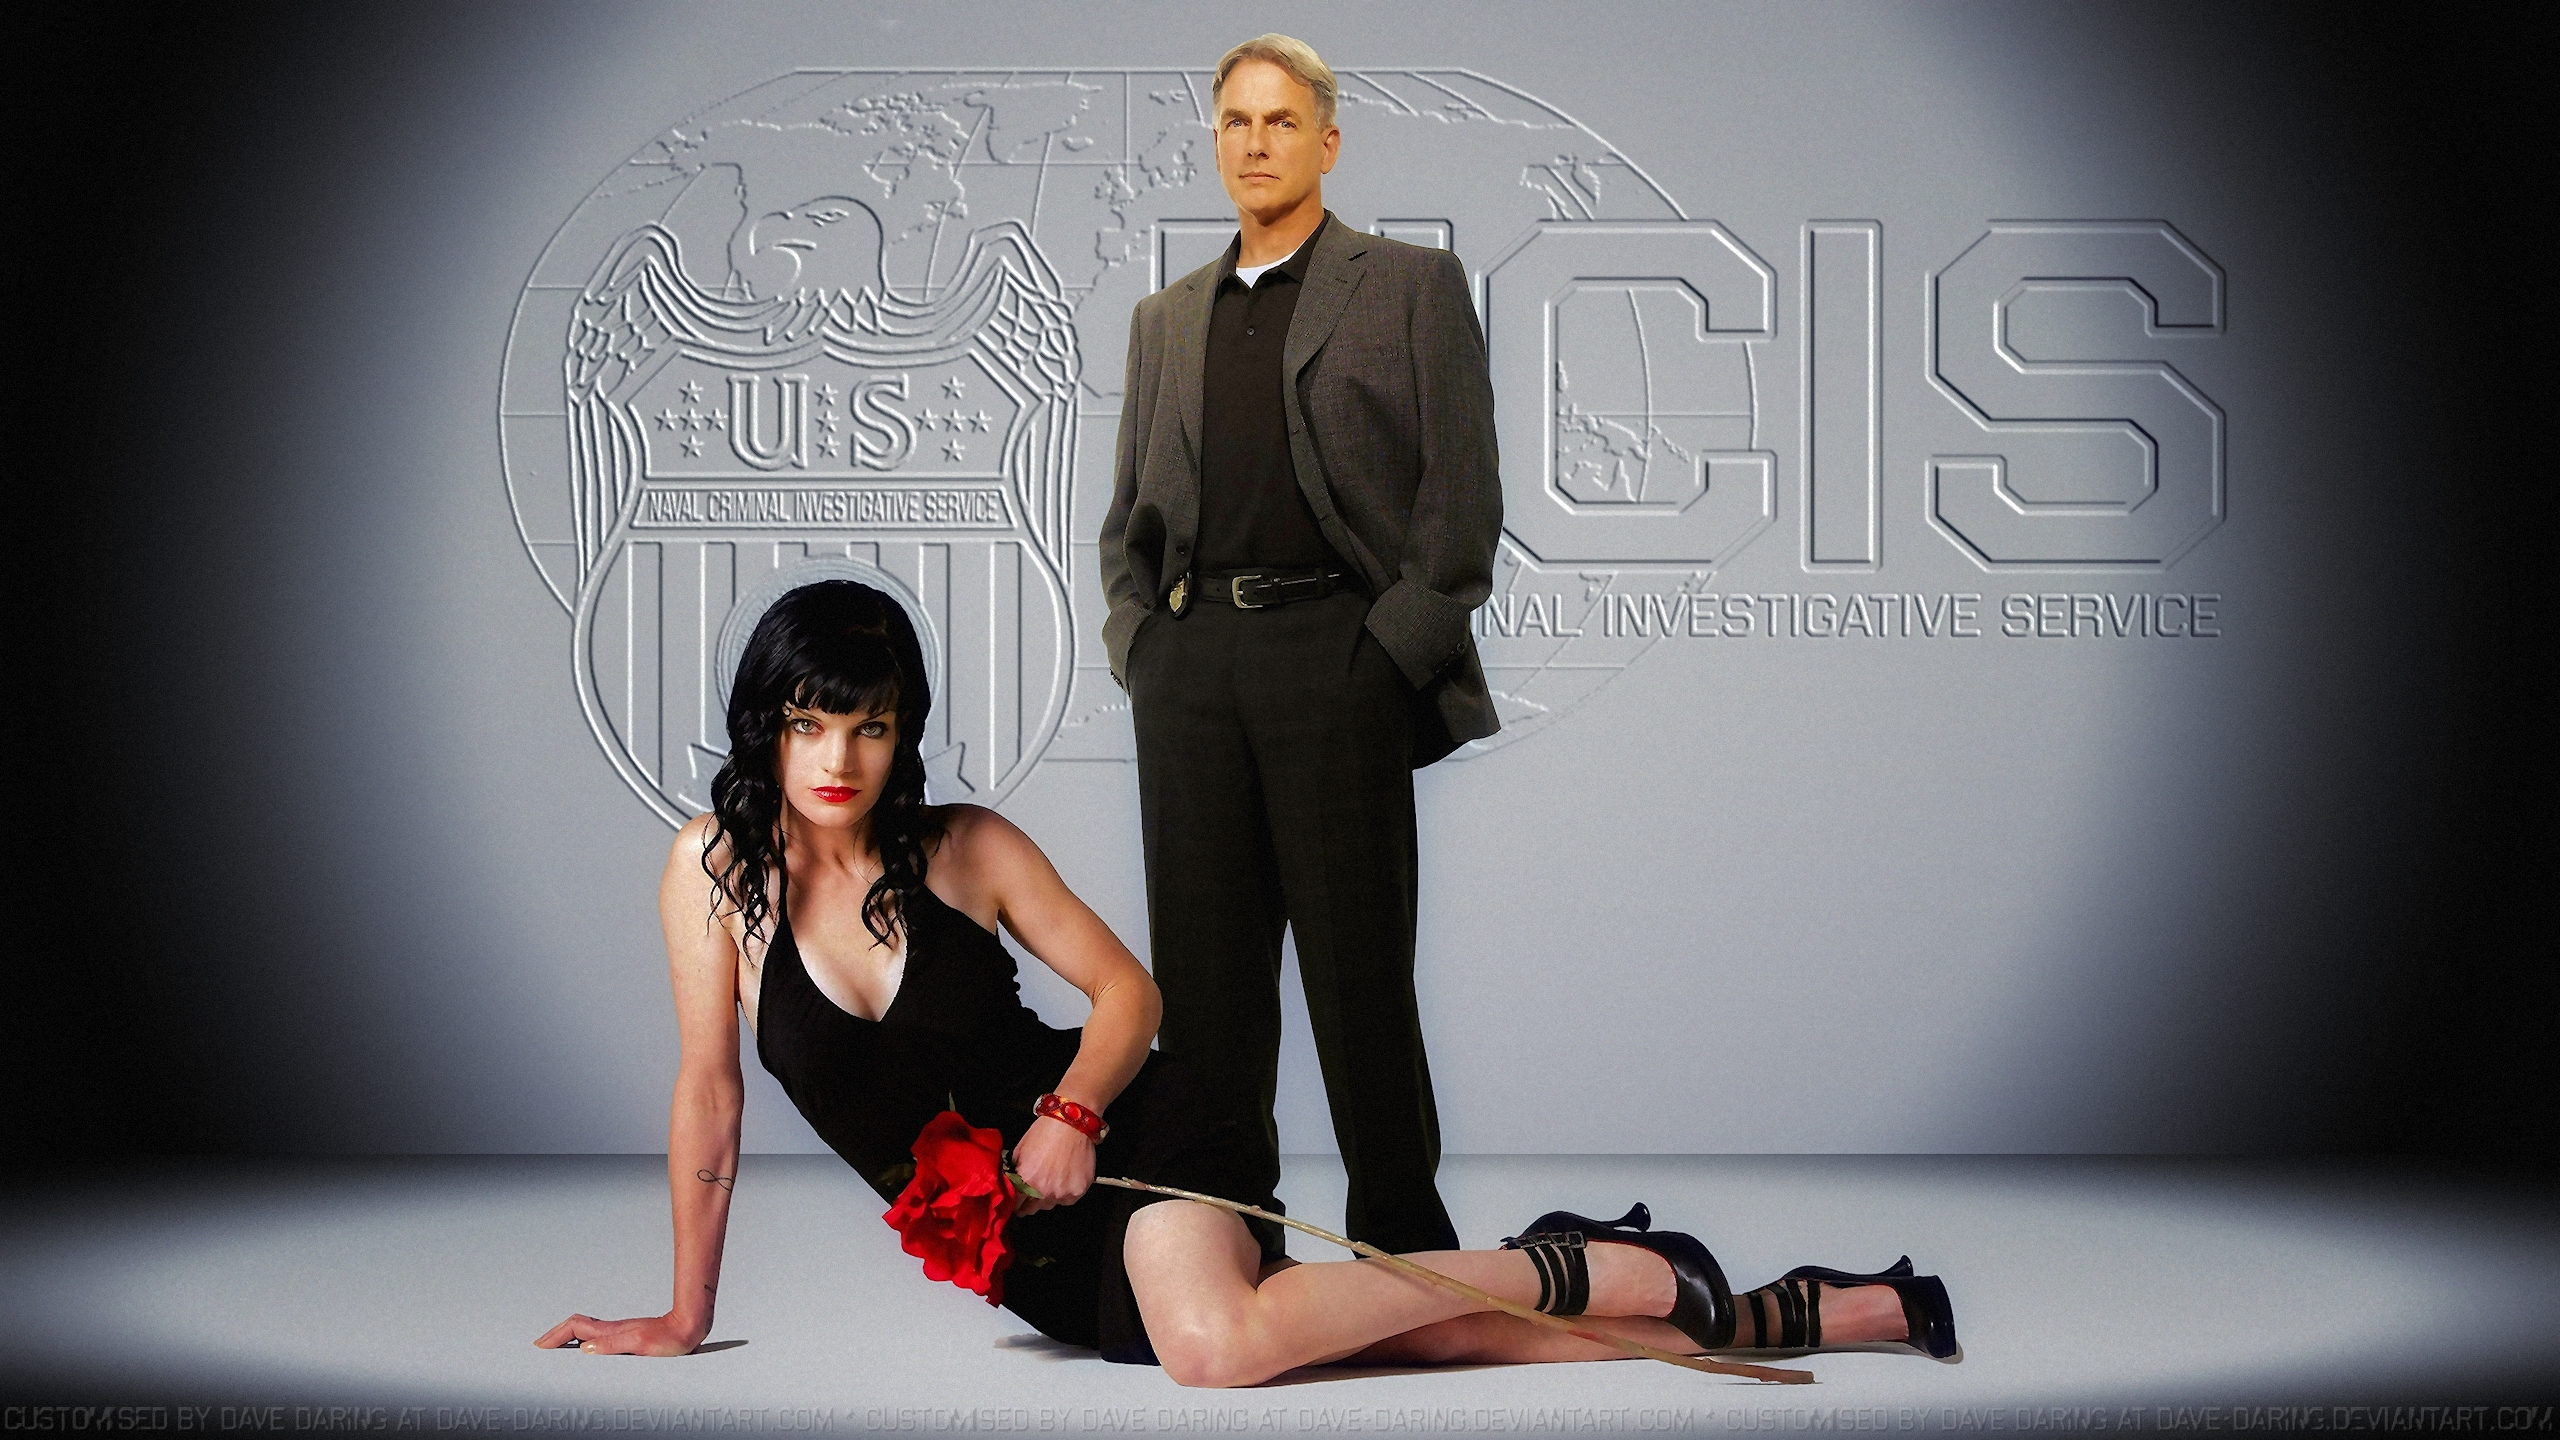 ncis girls images abby - photo #4